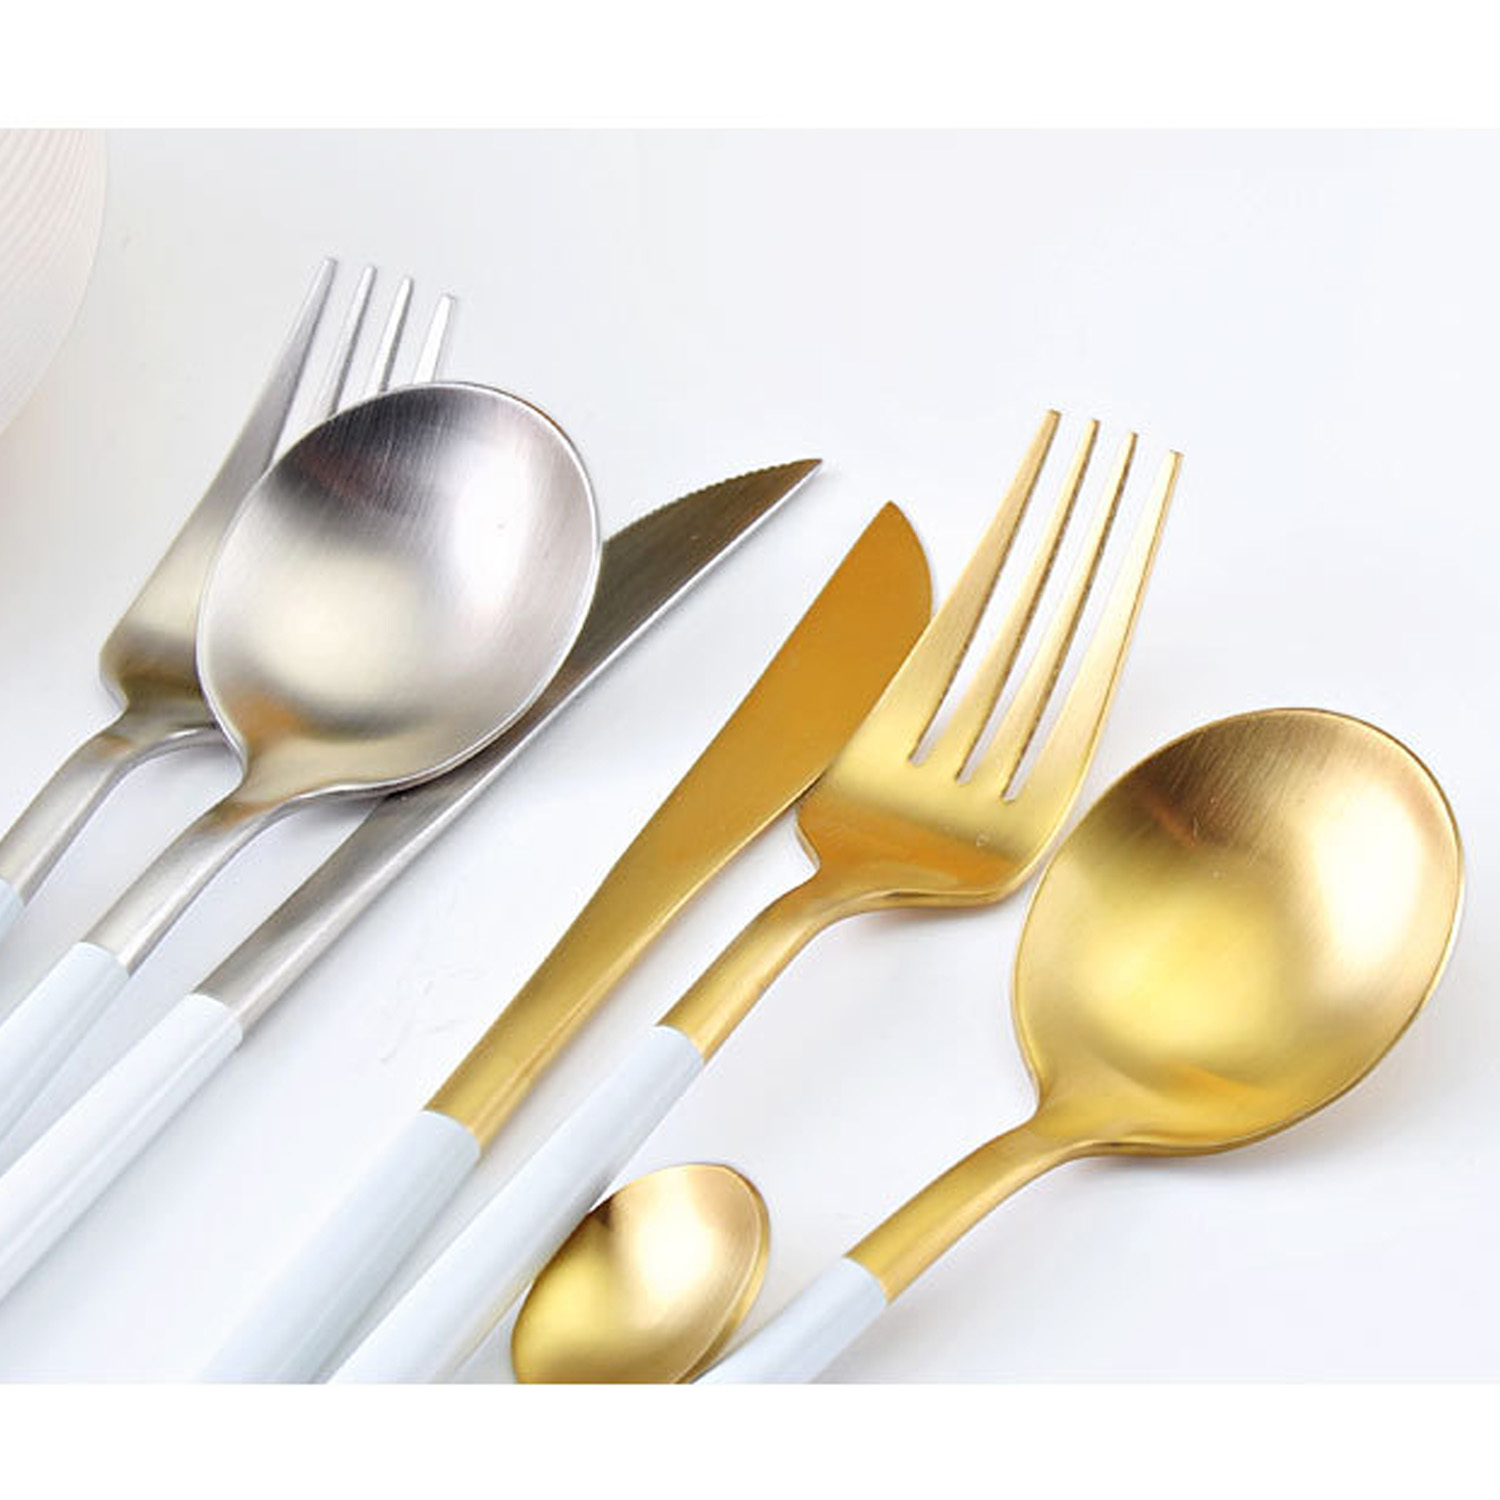 popular travel cutlery set with case buy cheap travel cutlery set behokic 4 pcs set luxurious stainless steel camping cutlery set 1 knife 1 fork dinnerware